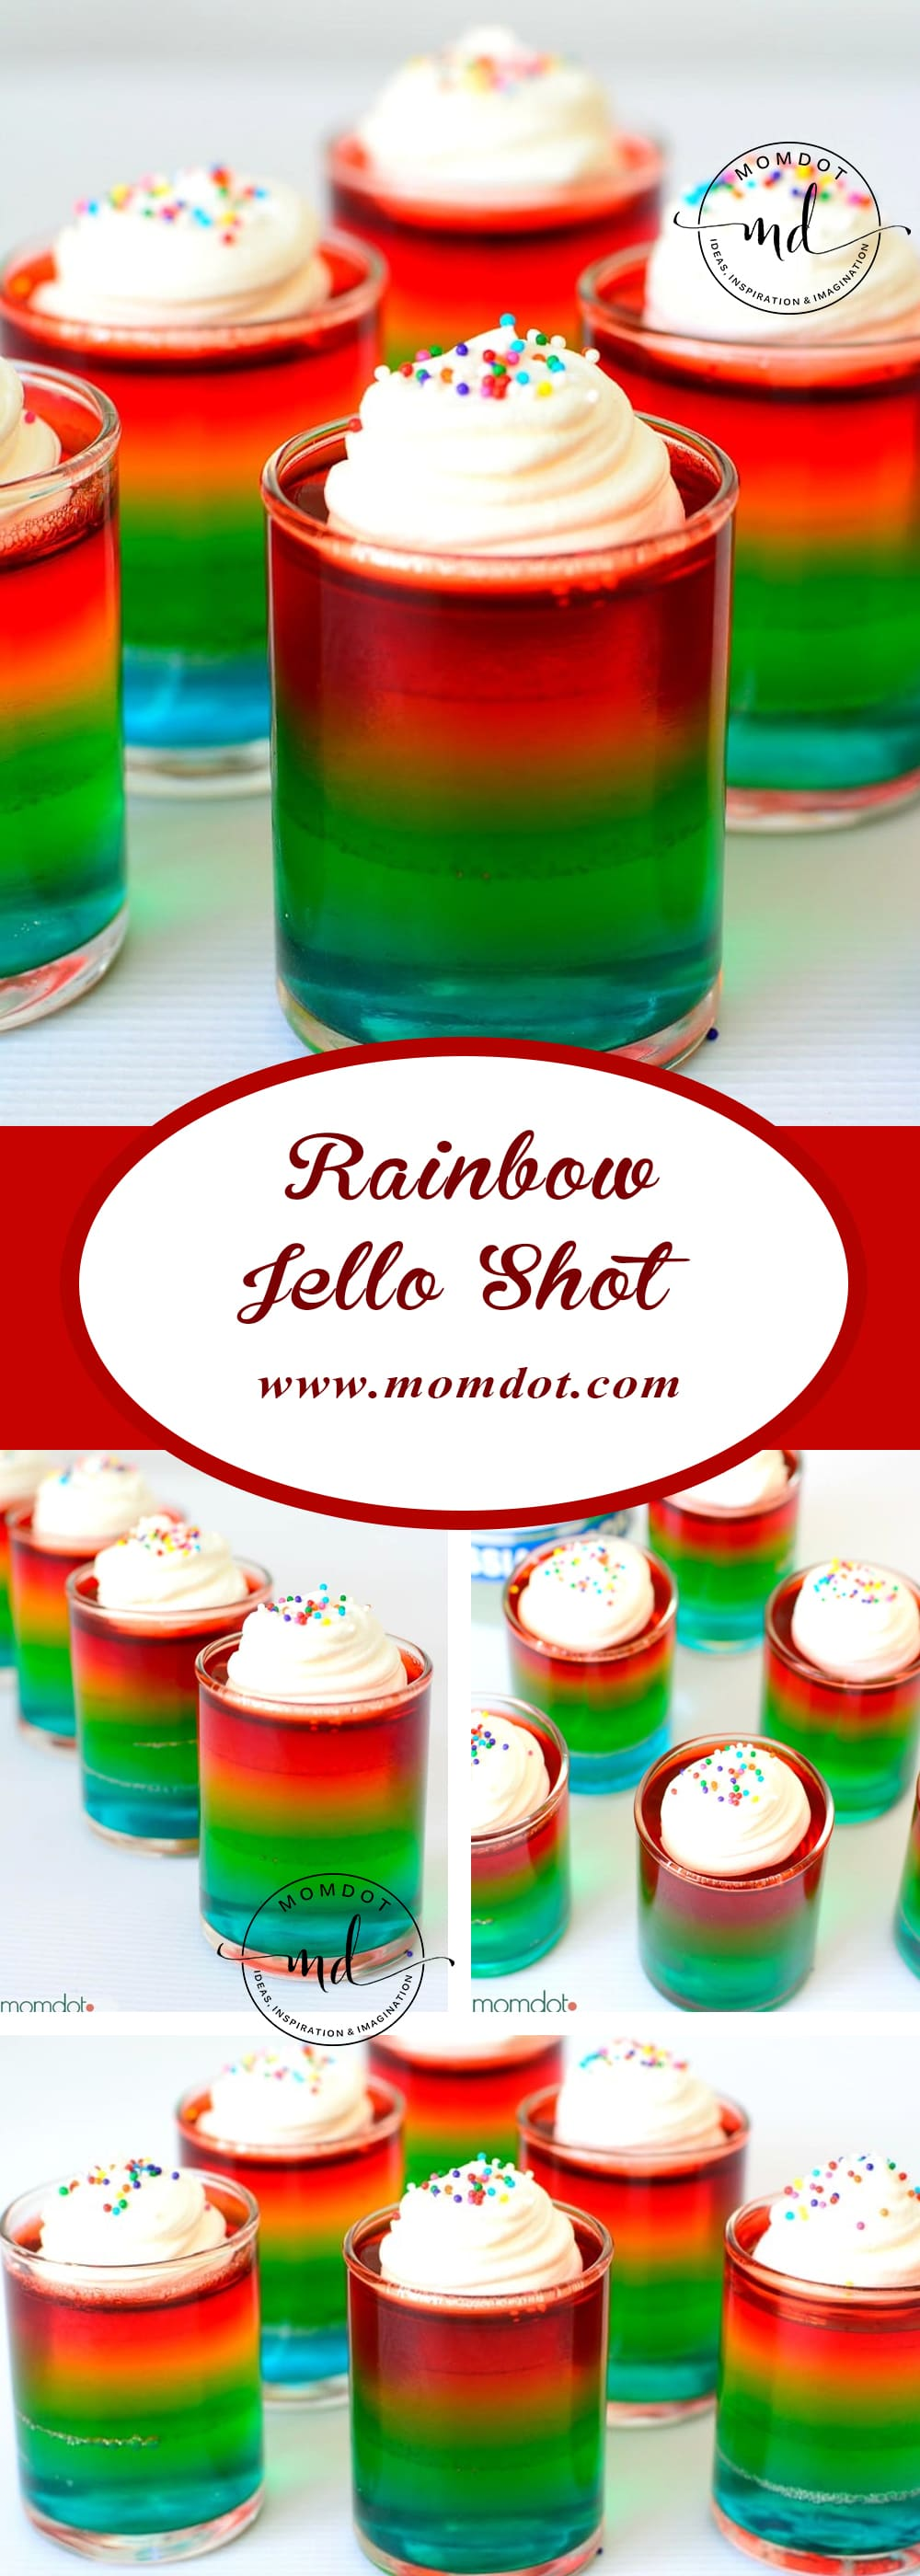 How long does it take to make rainbow jello shots with alcohol